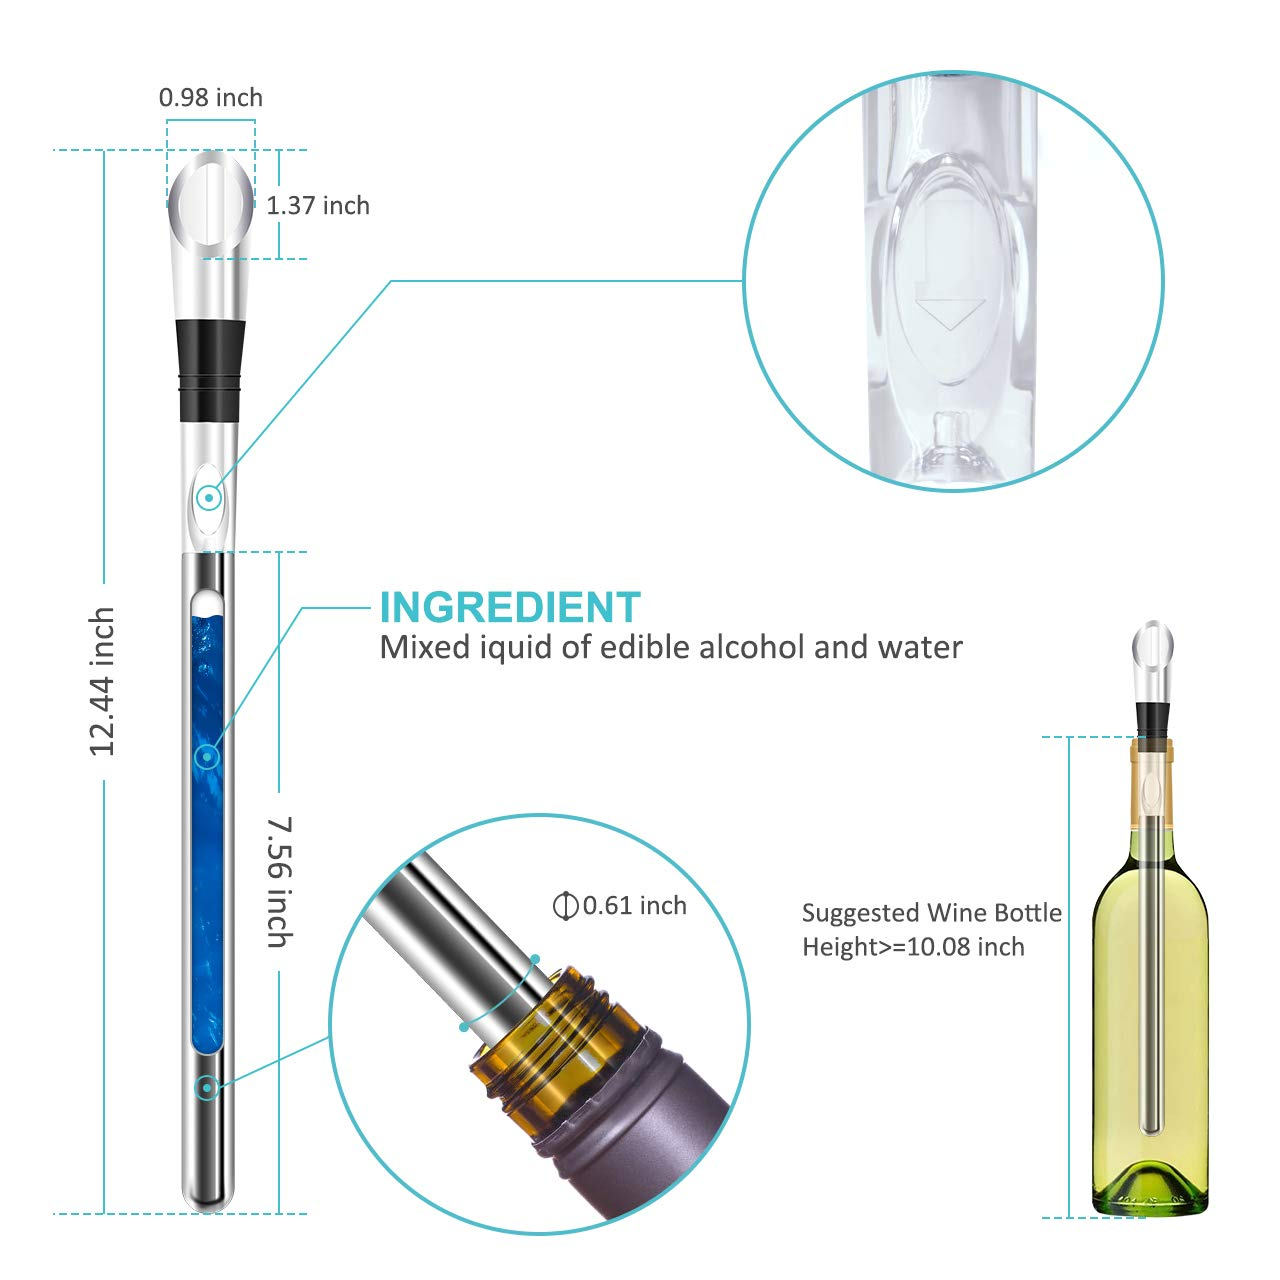 Wine Chiller, 3-in-1 Stainless Steel Wine Bottle Cooler Stick - Rapid Iceless Wine Chilling Rod with Aerator and Pourer - Perfect Wine Accessories Gift by Newward (Image #4)